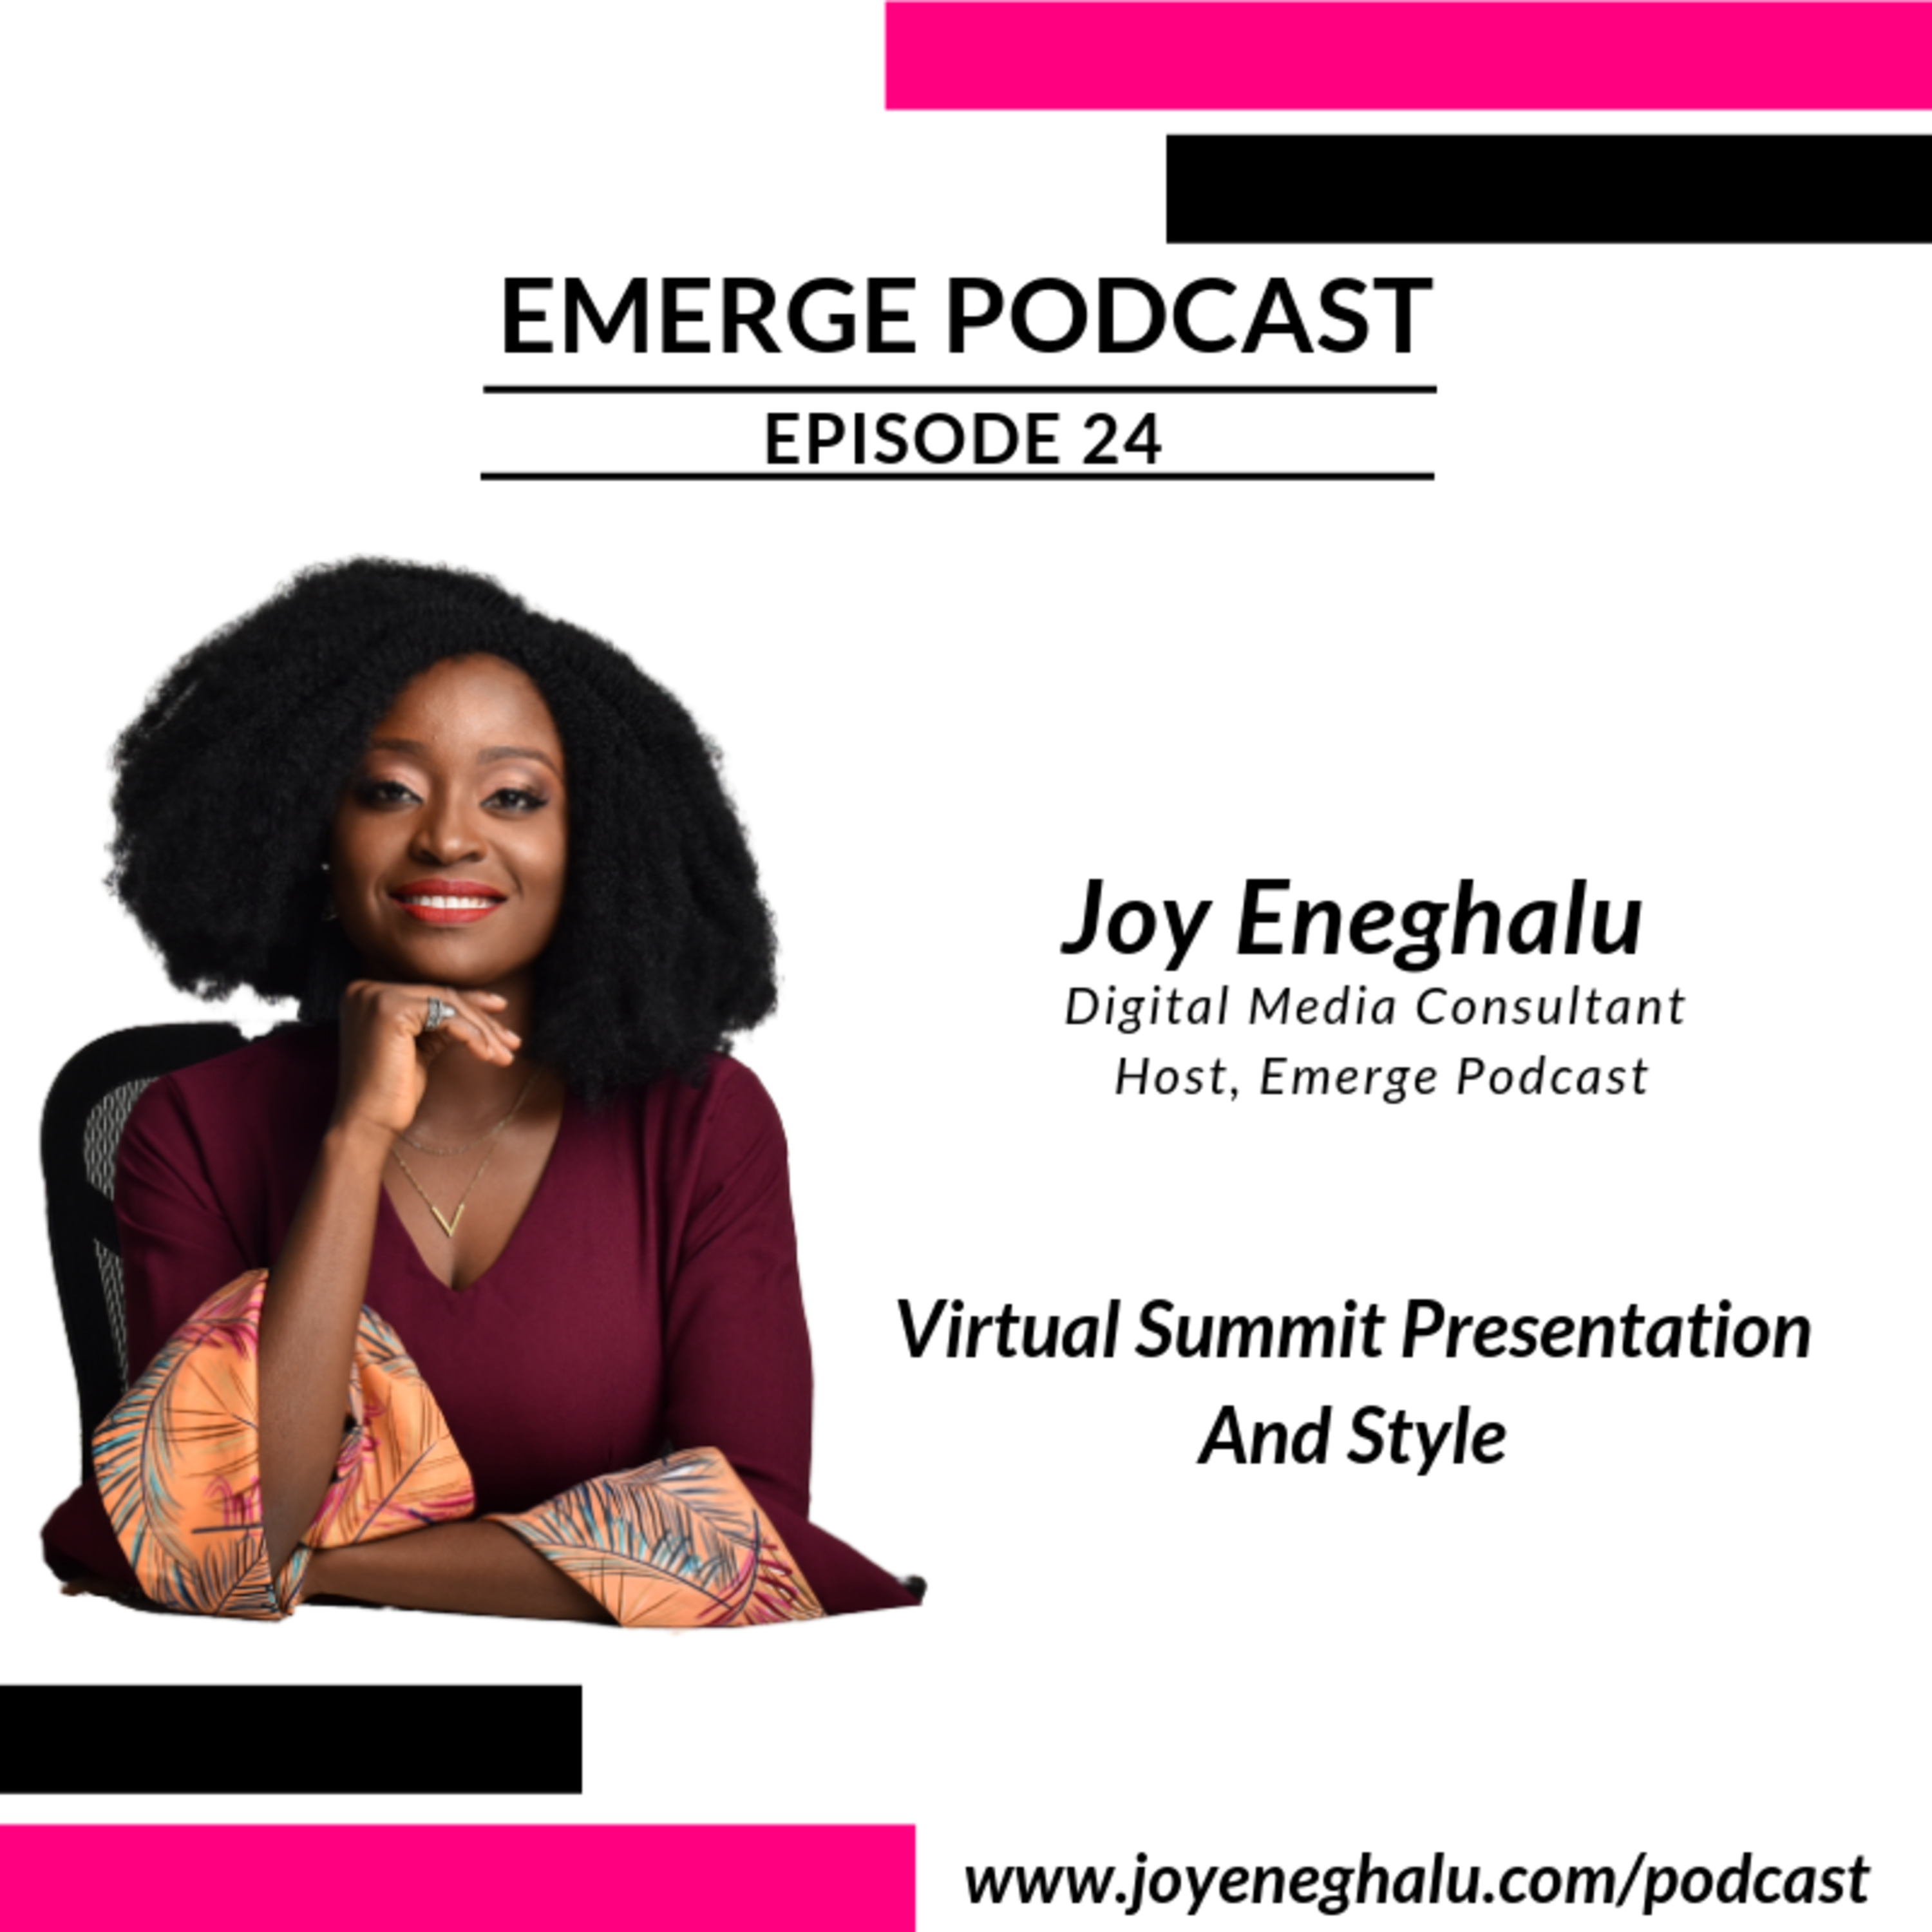 EP 24 - Virtual Summit Presentation And Style